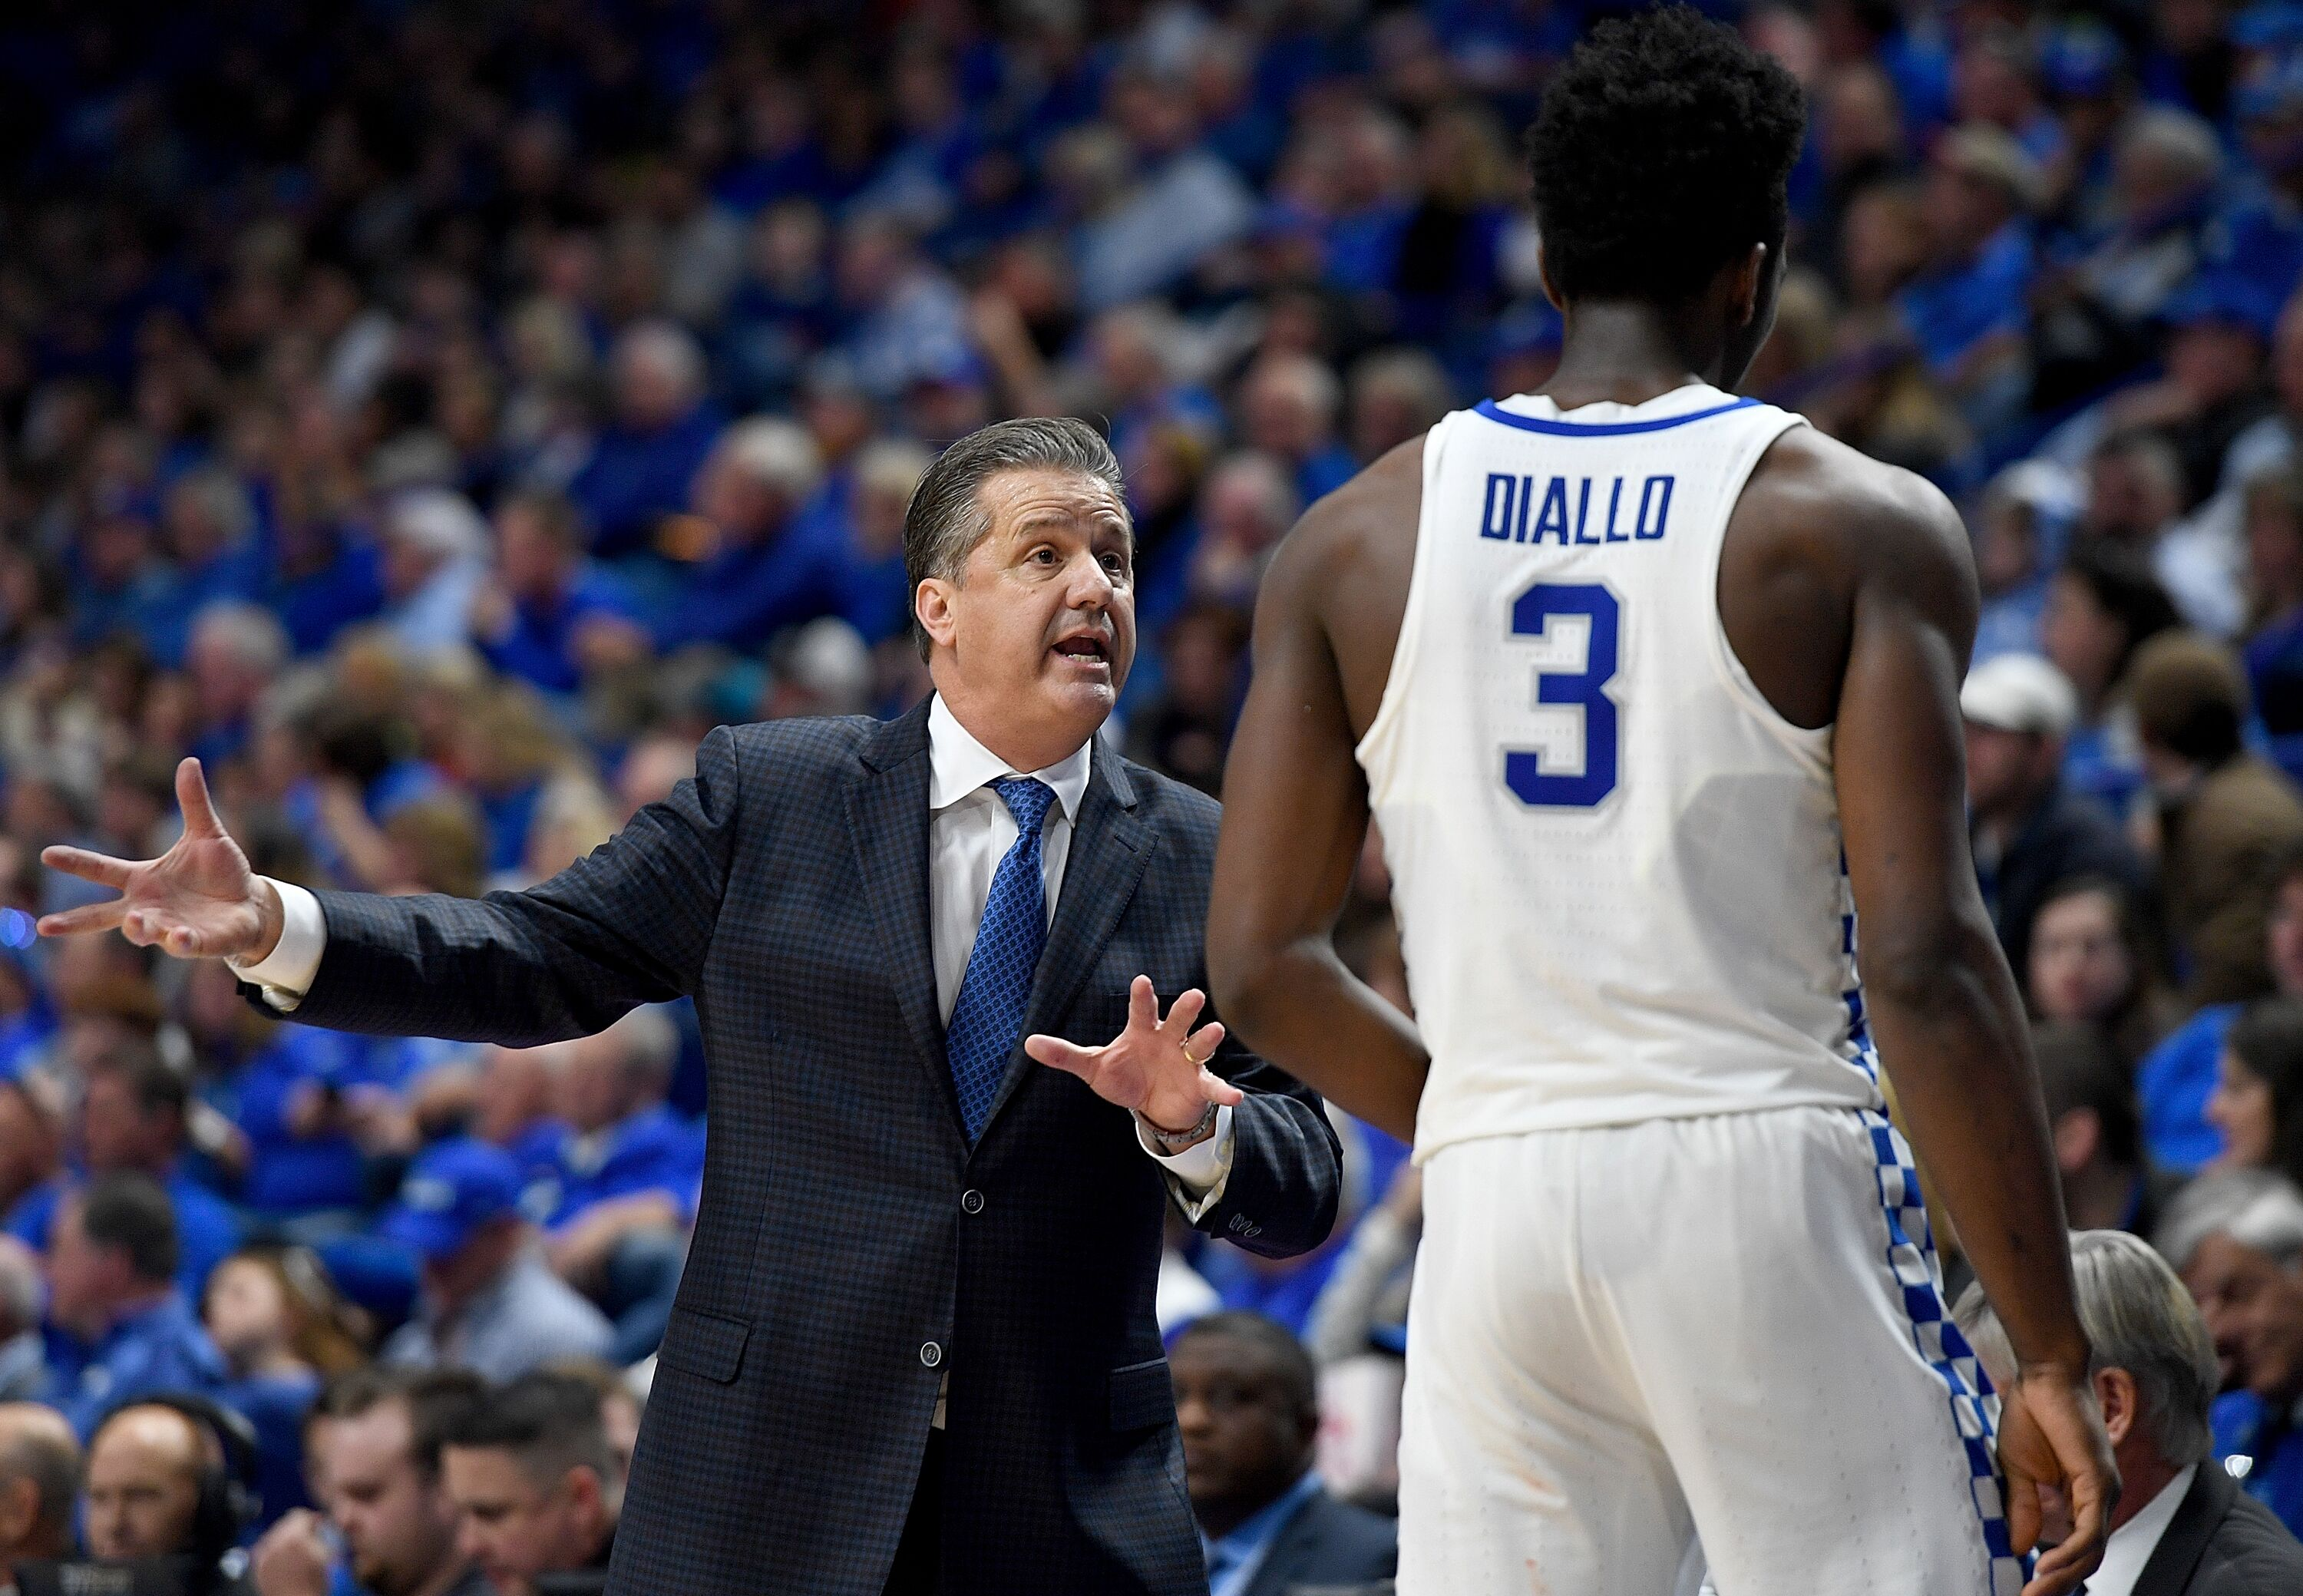 Kentucky Basketball 3 Concerns After Wildcats Home Loss: Calipari's Decisions Are Hurting Diallo And The Kentucky